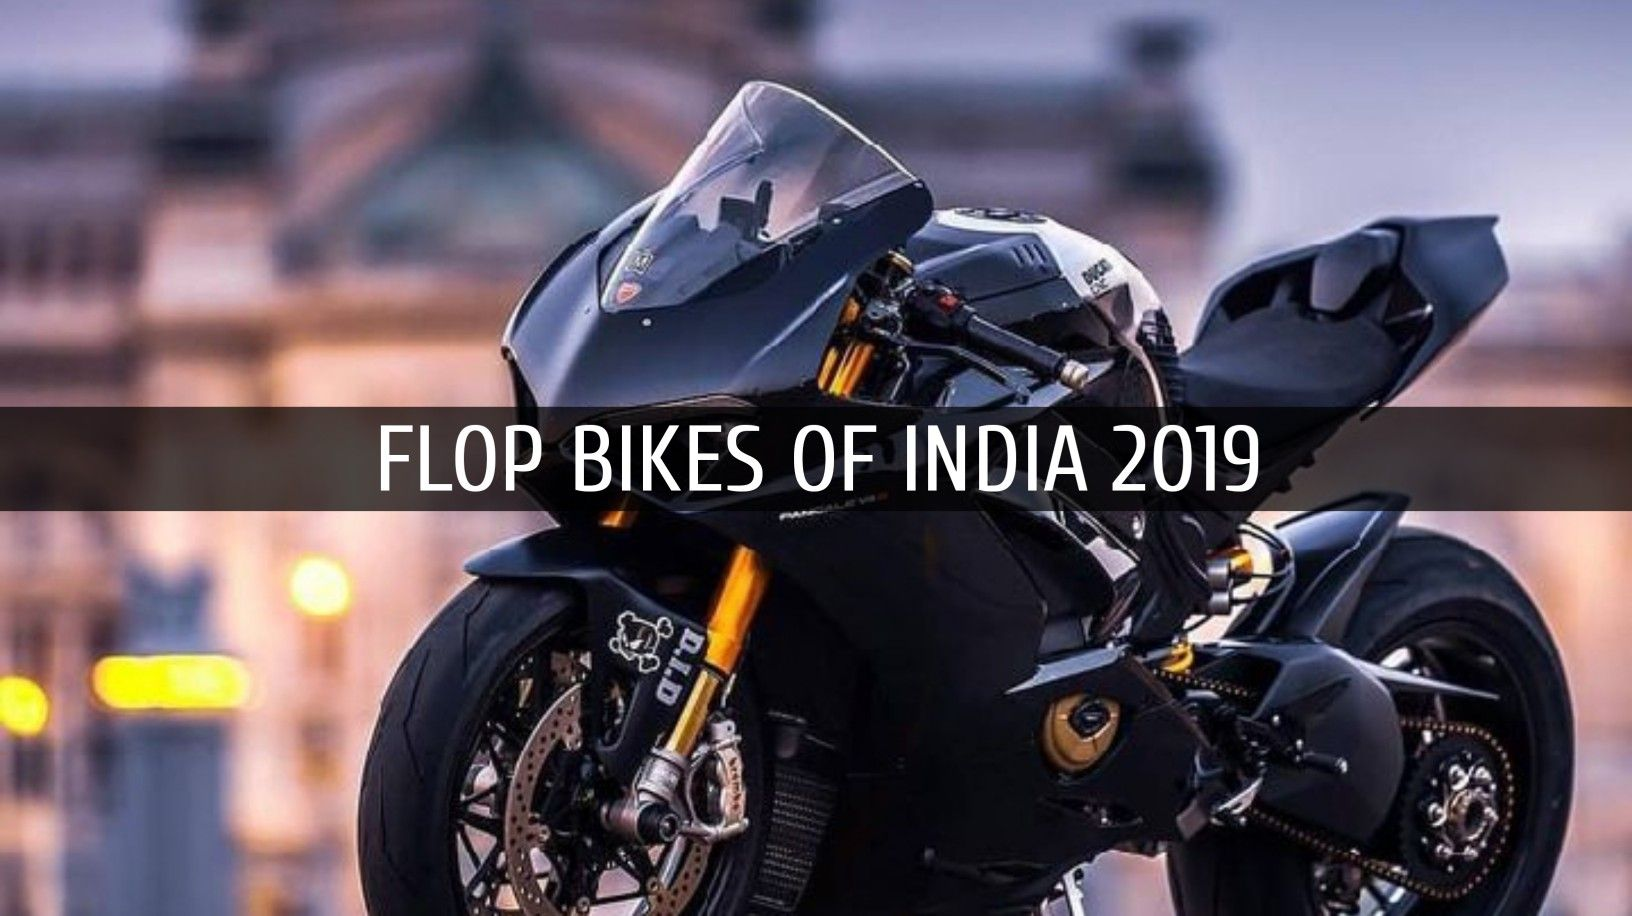 Top 5 Flop Bikes Of India 2019 Flop Bikes In India Topic I Cover Bike Under 1 Lakh In India Bike Under 1 5 Lakh In India Bike Bike Flop India